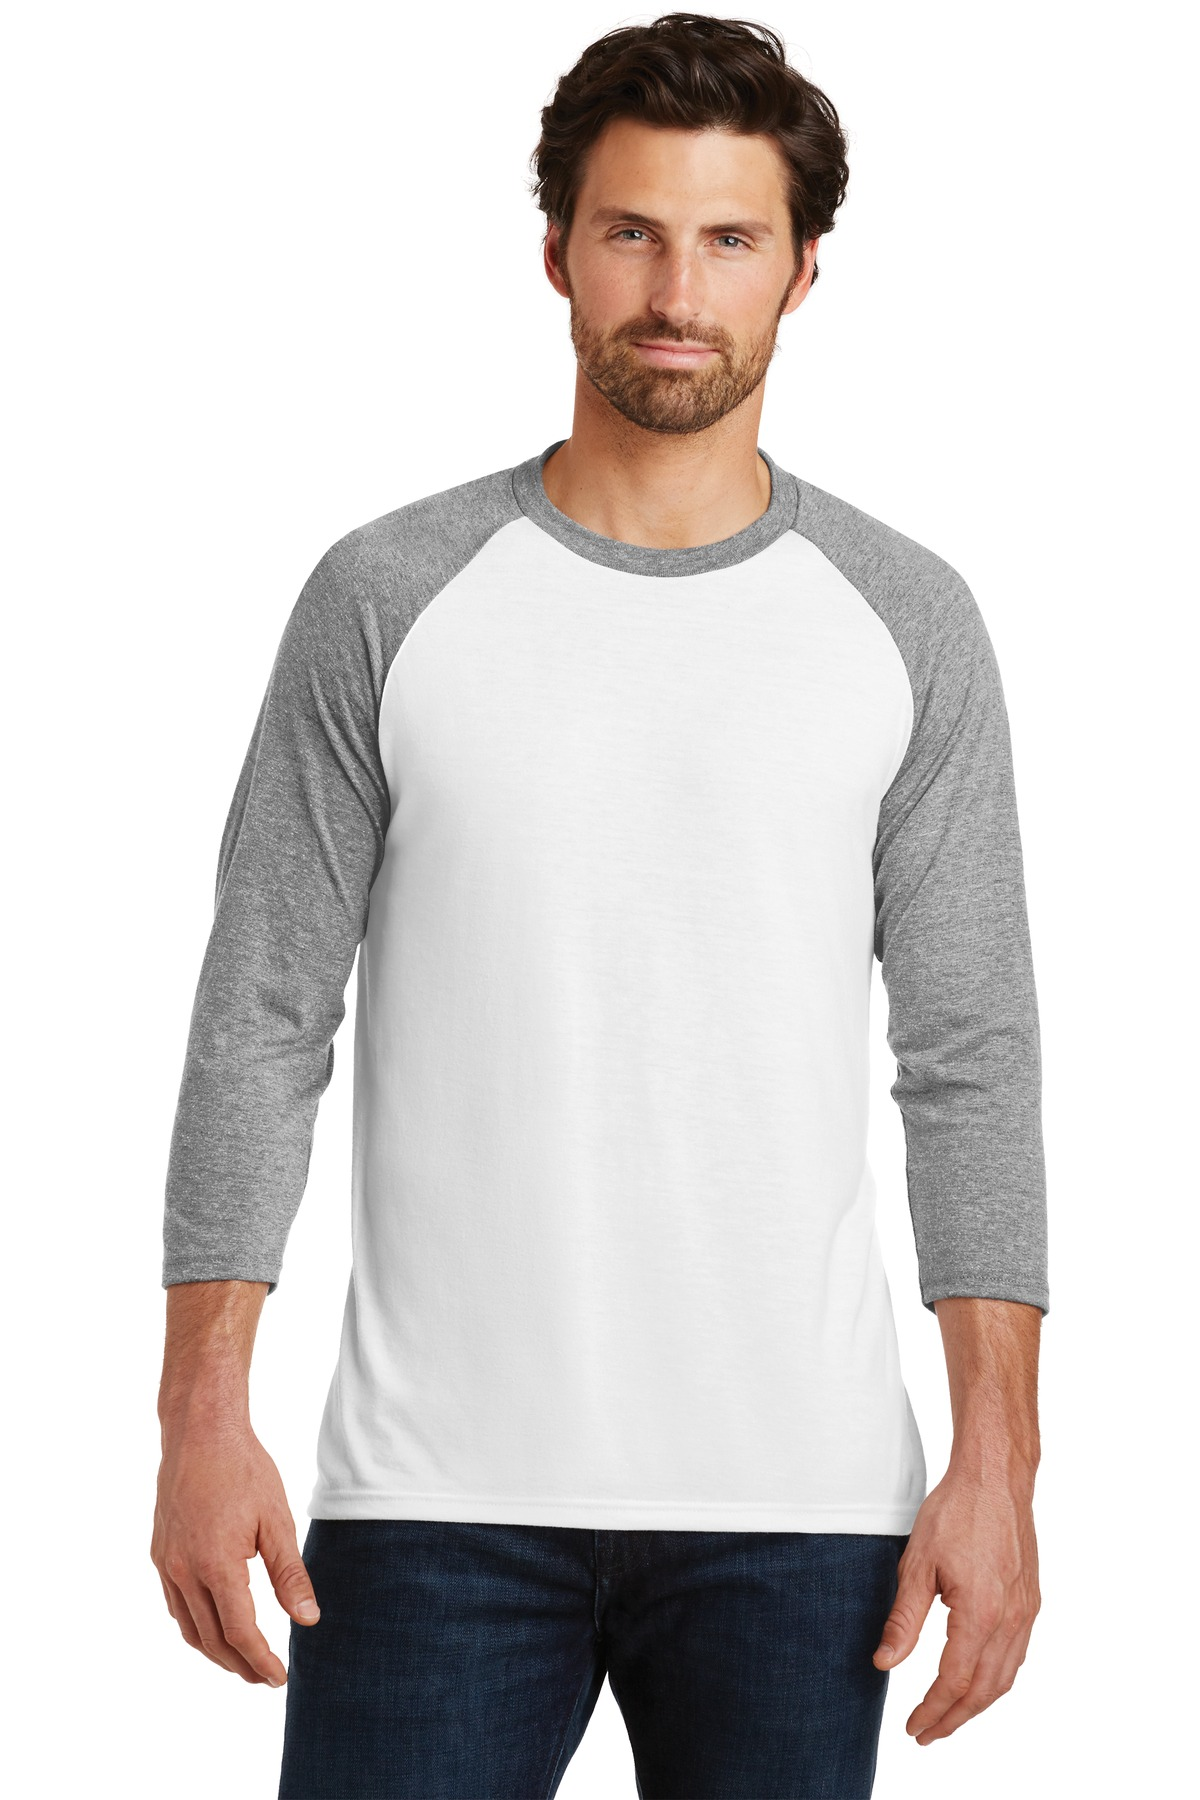 District  ®  Perfect Tri ®  3/4-Sleeve Raglan. DM136 - Grey Frost/ White